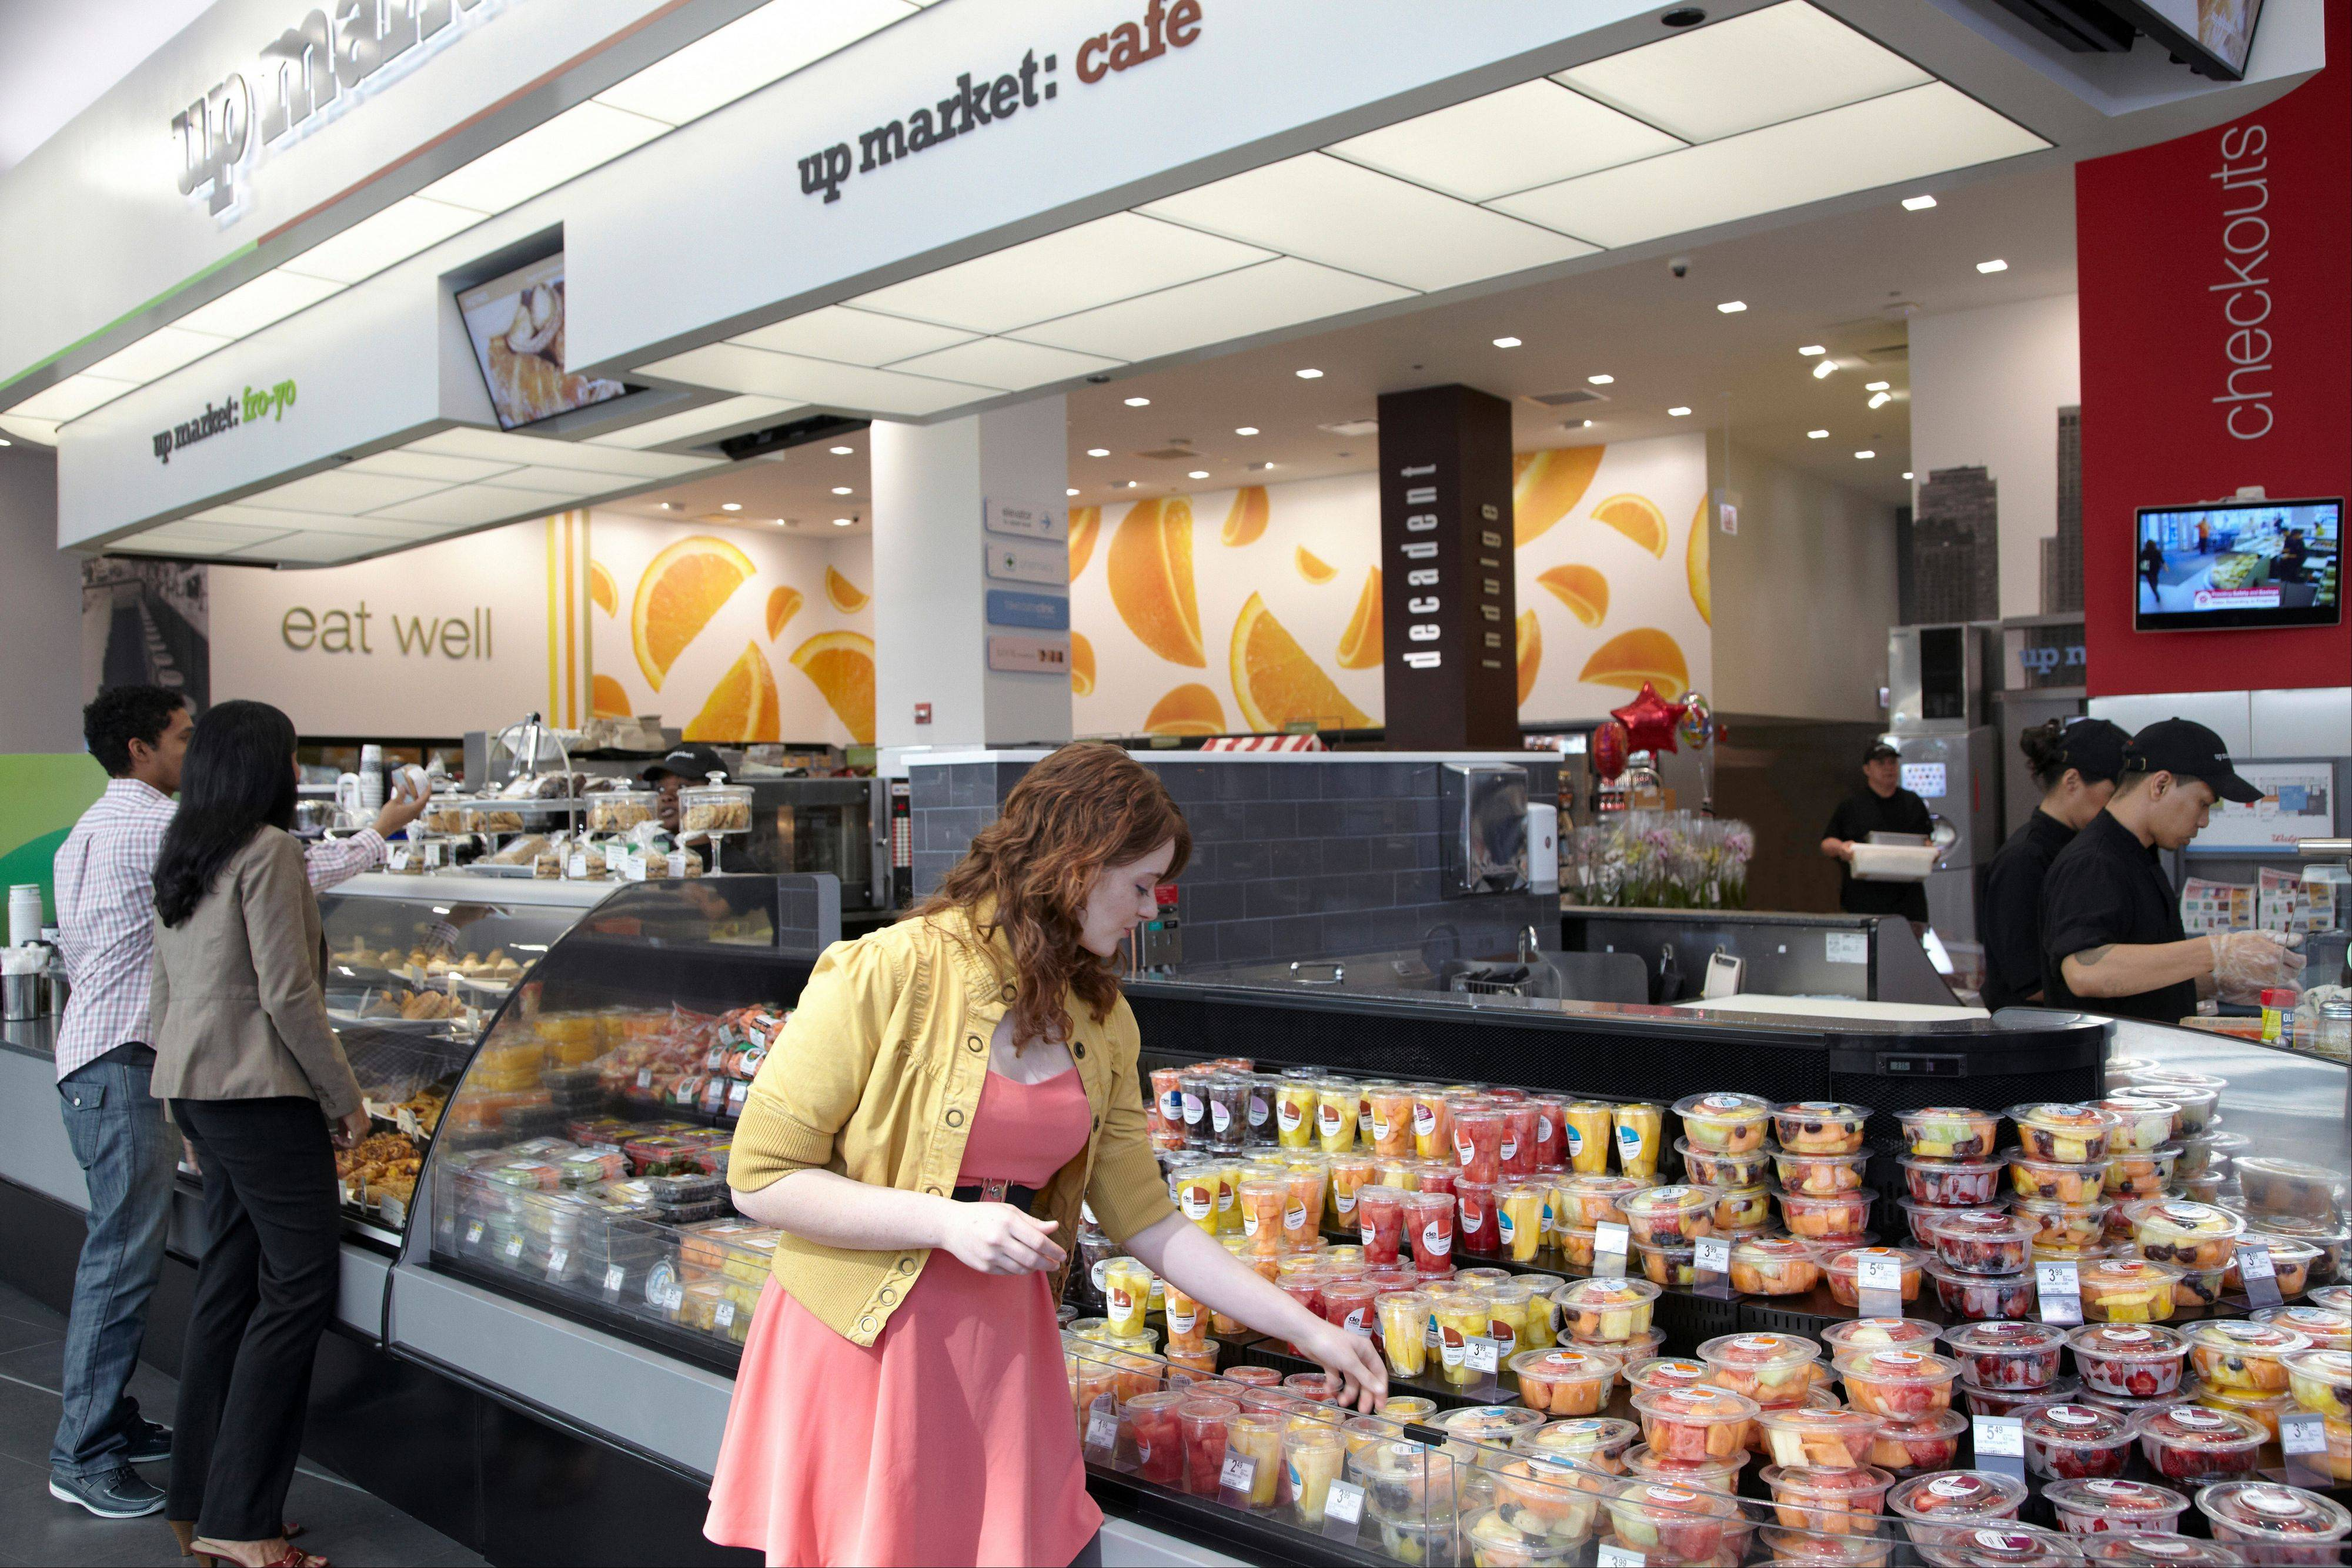 A look at the ready-made foods at the new Walgreens on State Street in downtown Chicago.